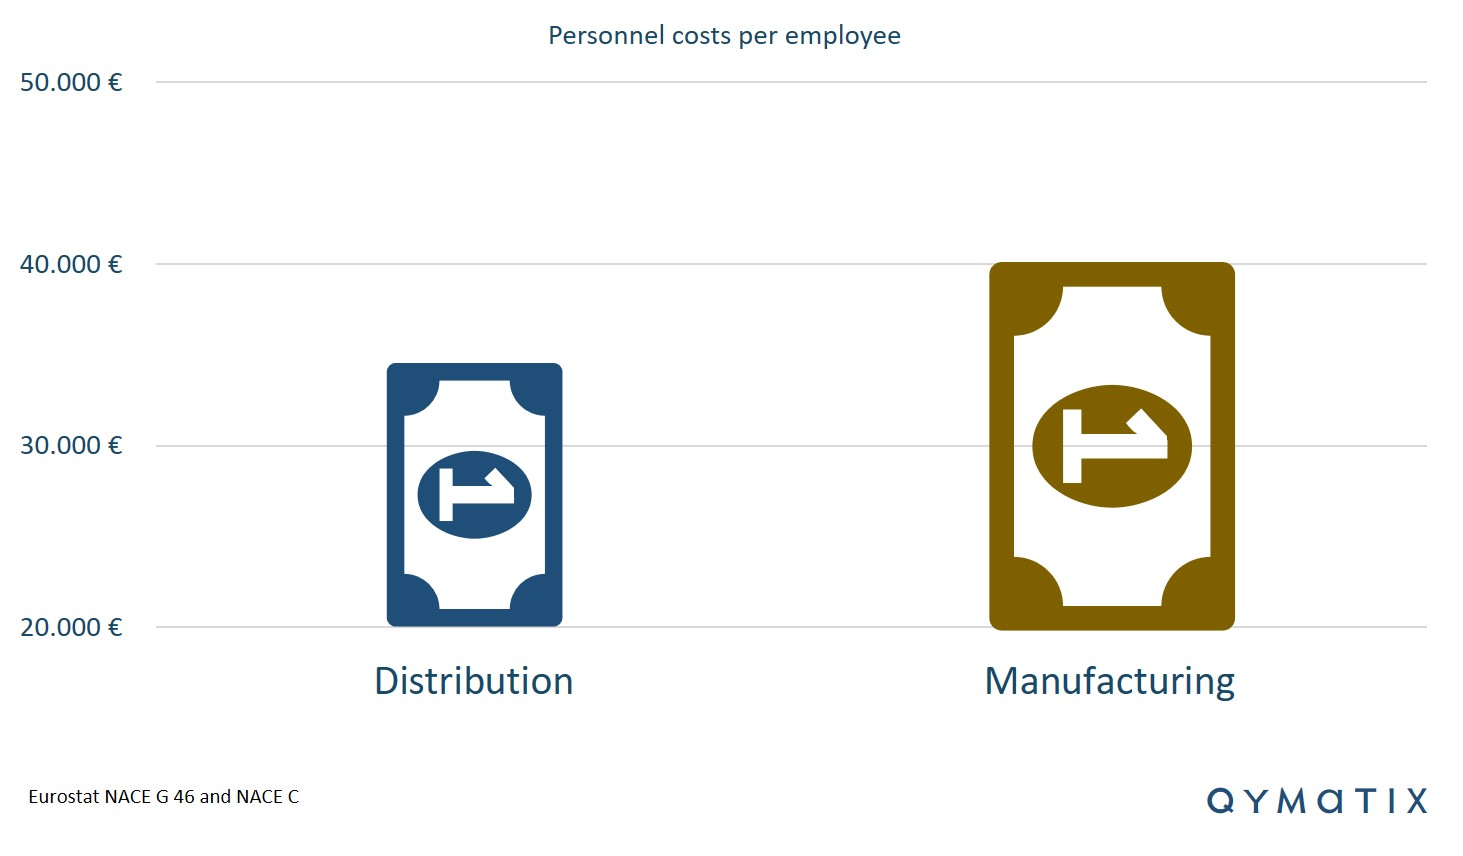 personnel-costs-per-employee-distribution-manufacturing